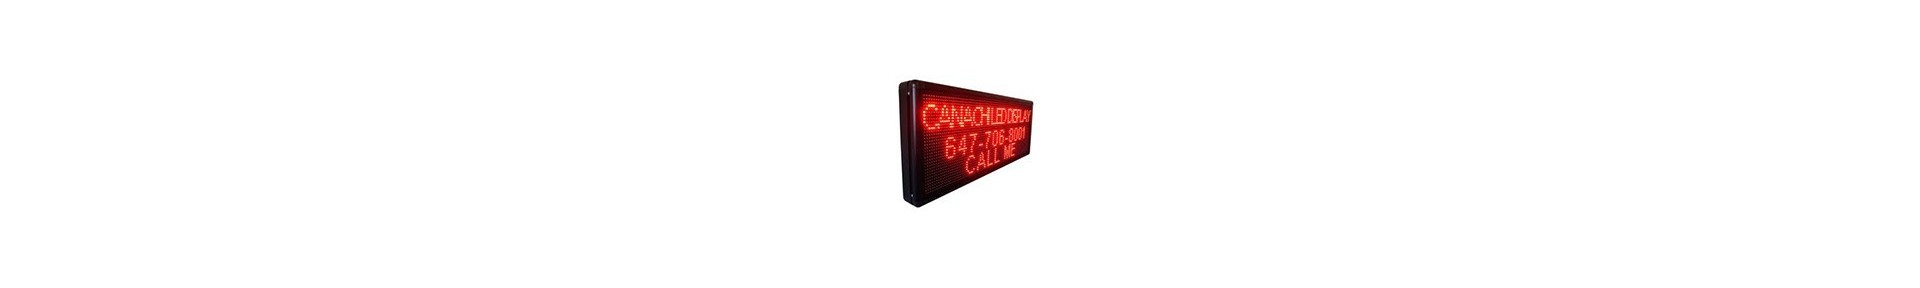 Custom LED Displays